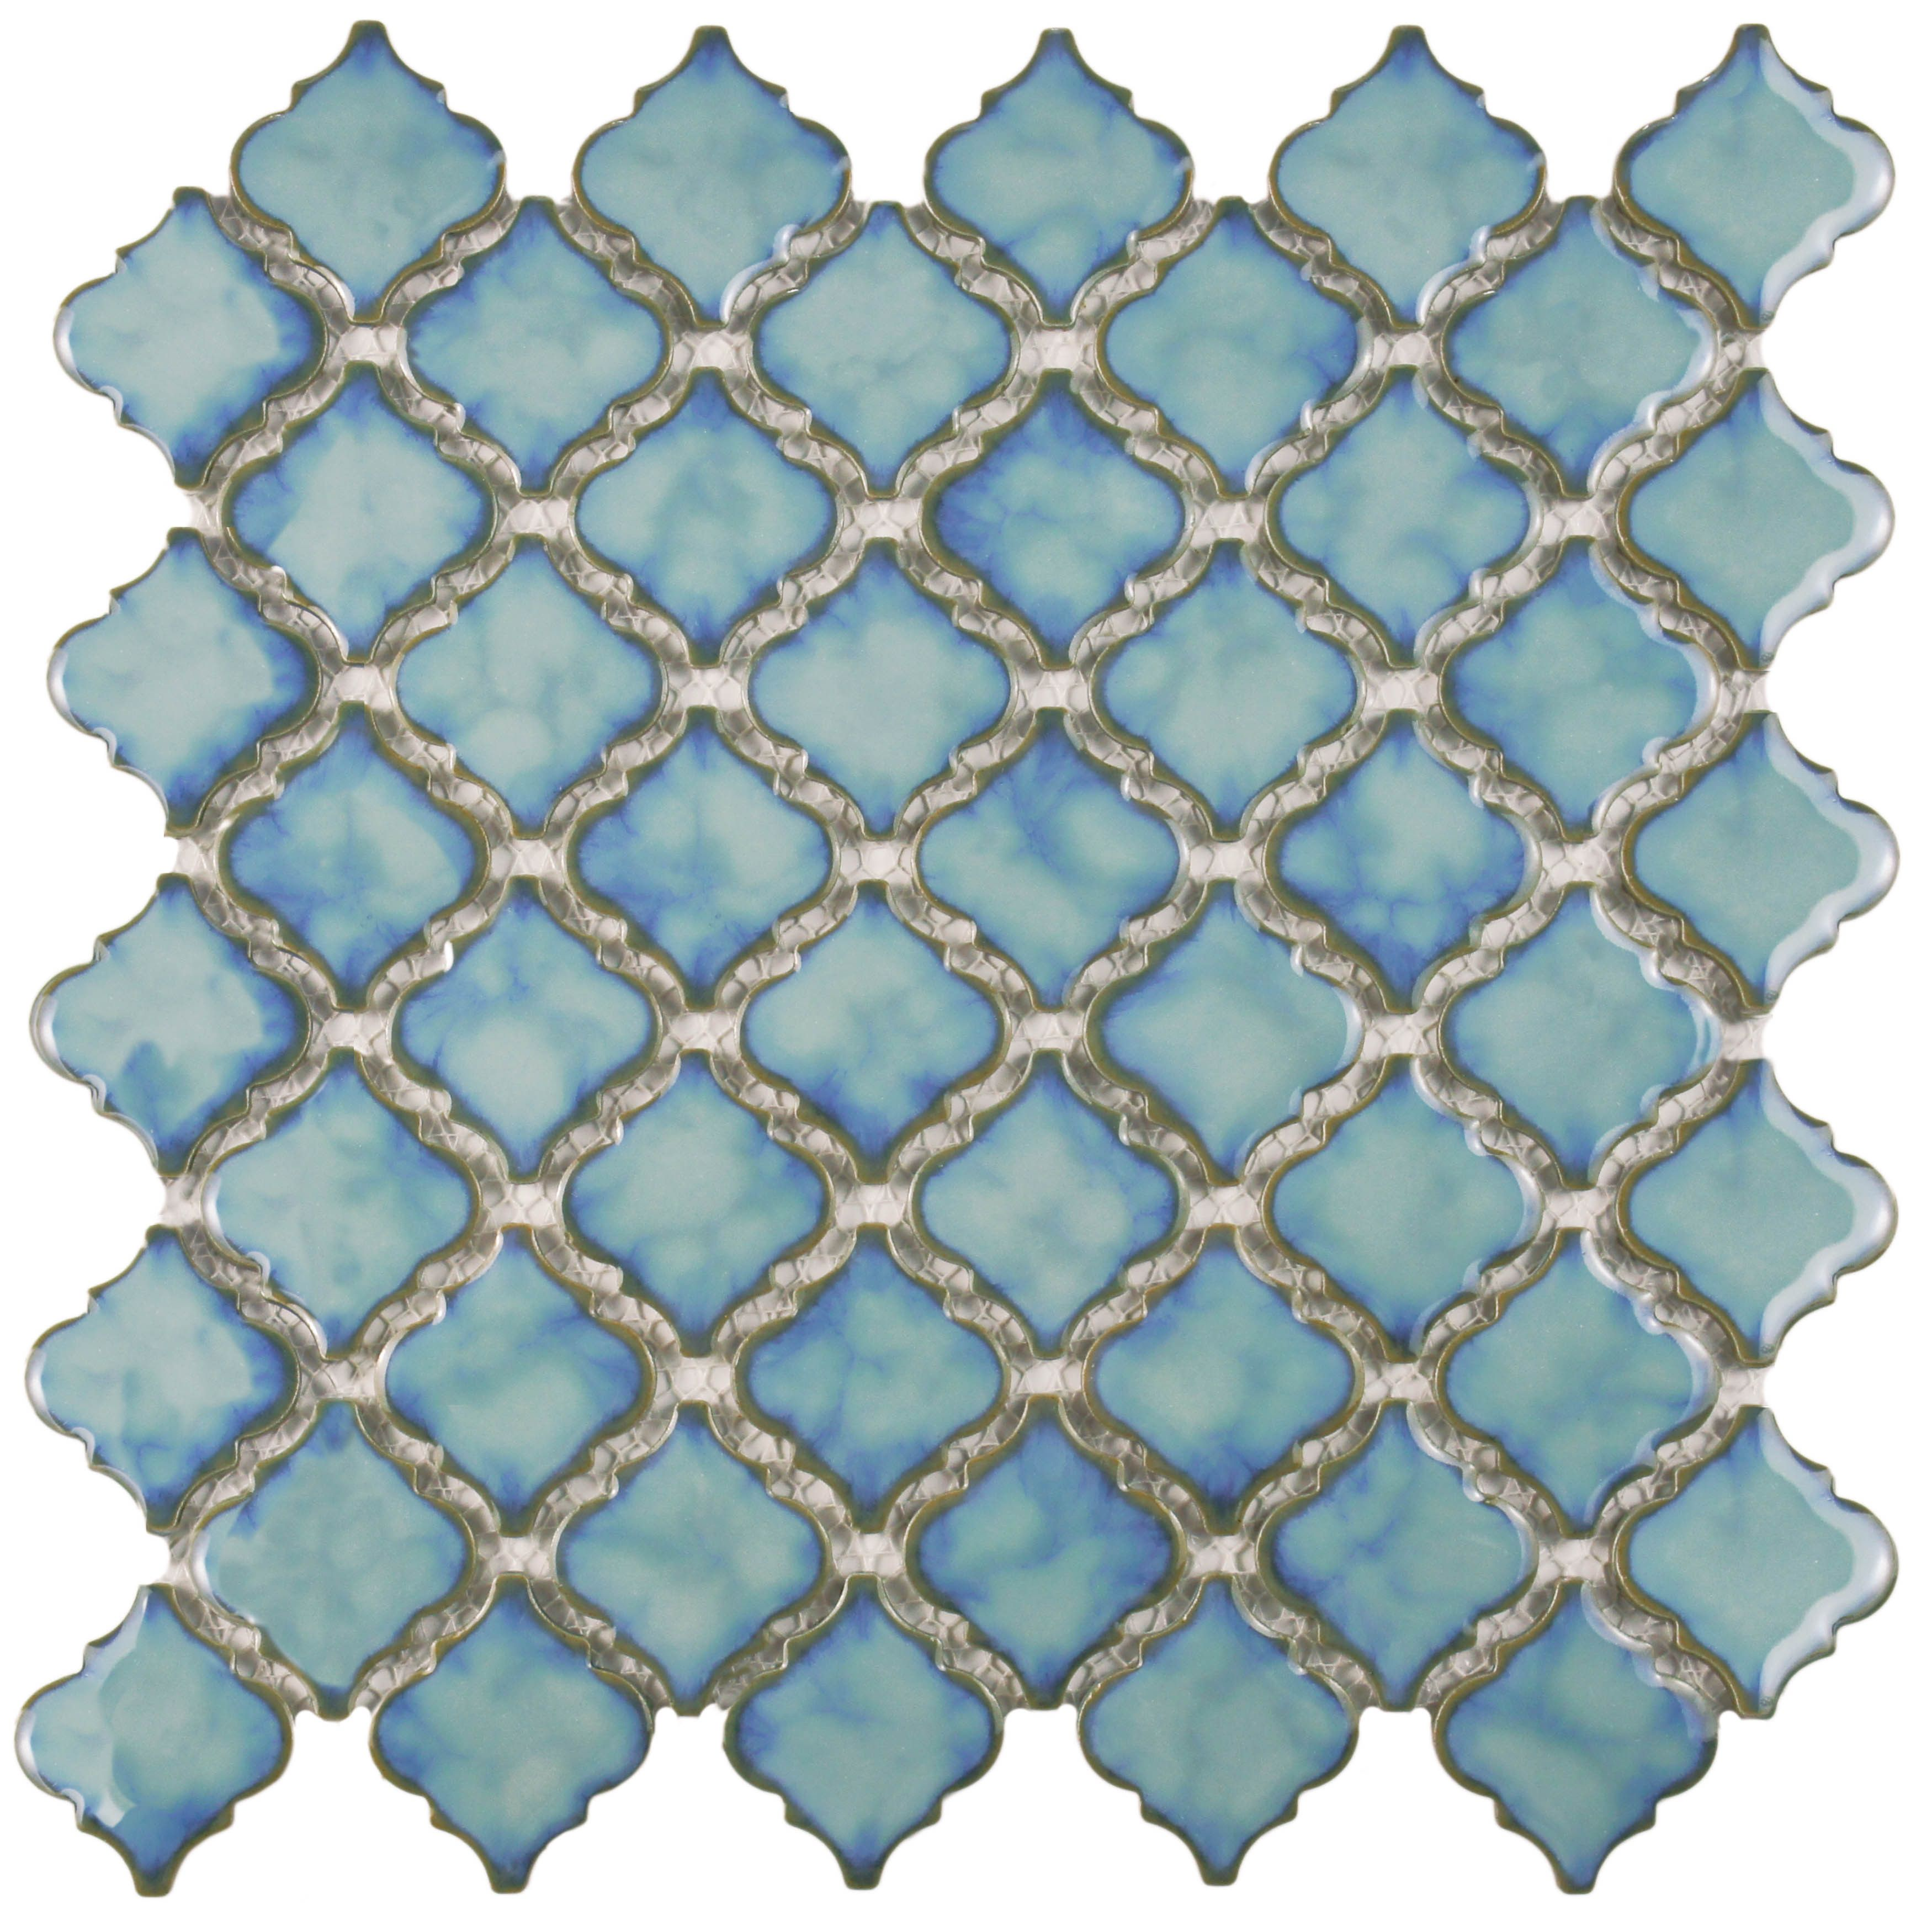 This somertile 13x13375 inch antaeus marine porcelain mosaic floor overstock online shopping bedding furniture electronics jewelry clothing more mosaic floorsmosaic tilesmosaicsstone dailygadgetfo Choice Image